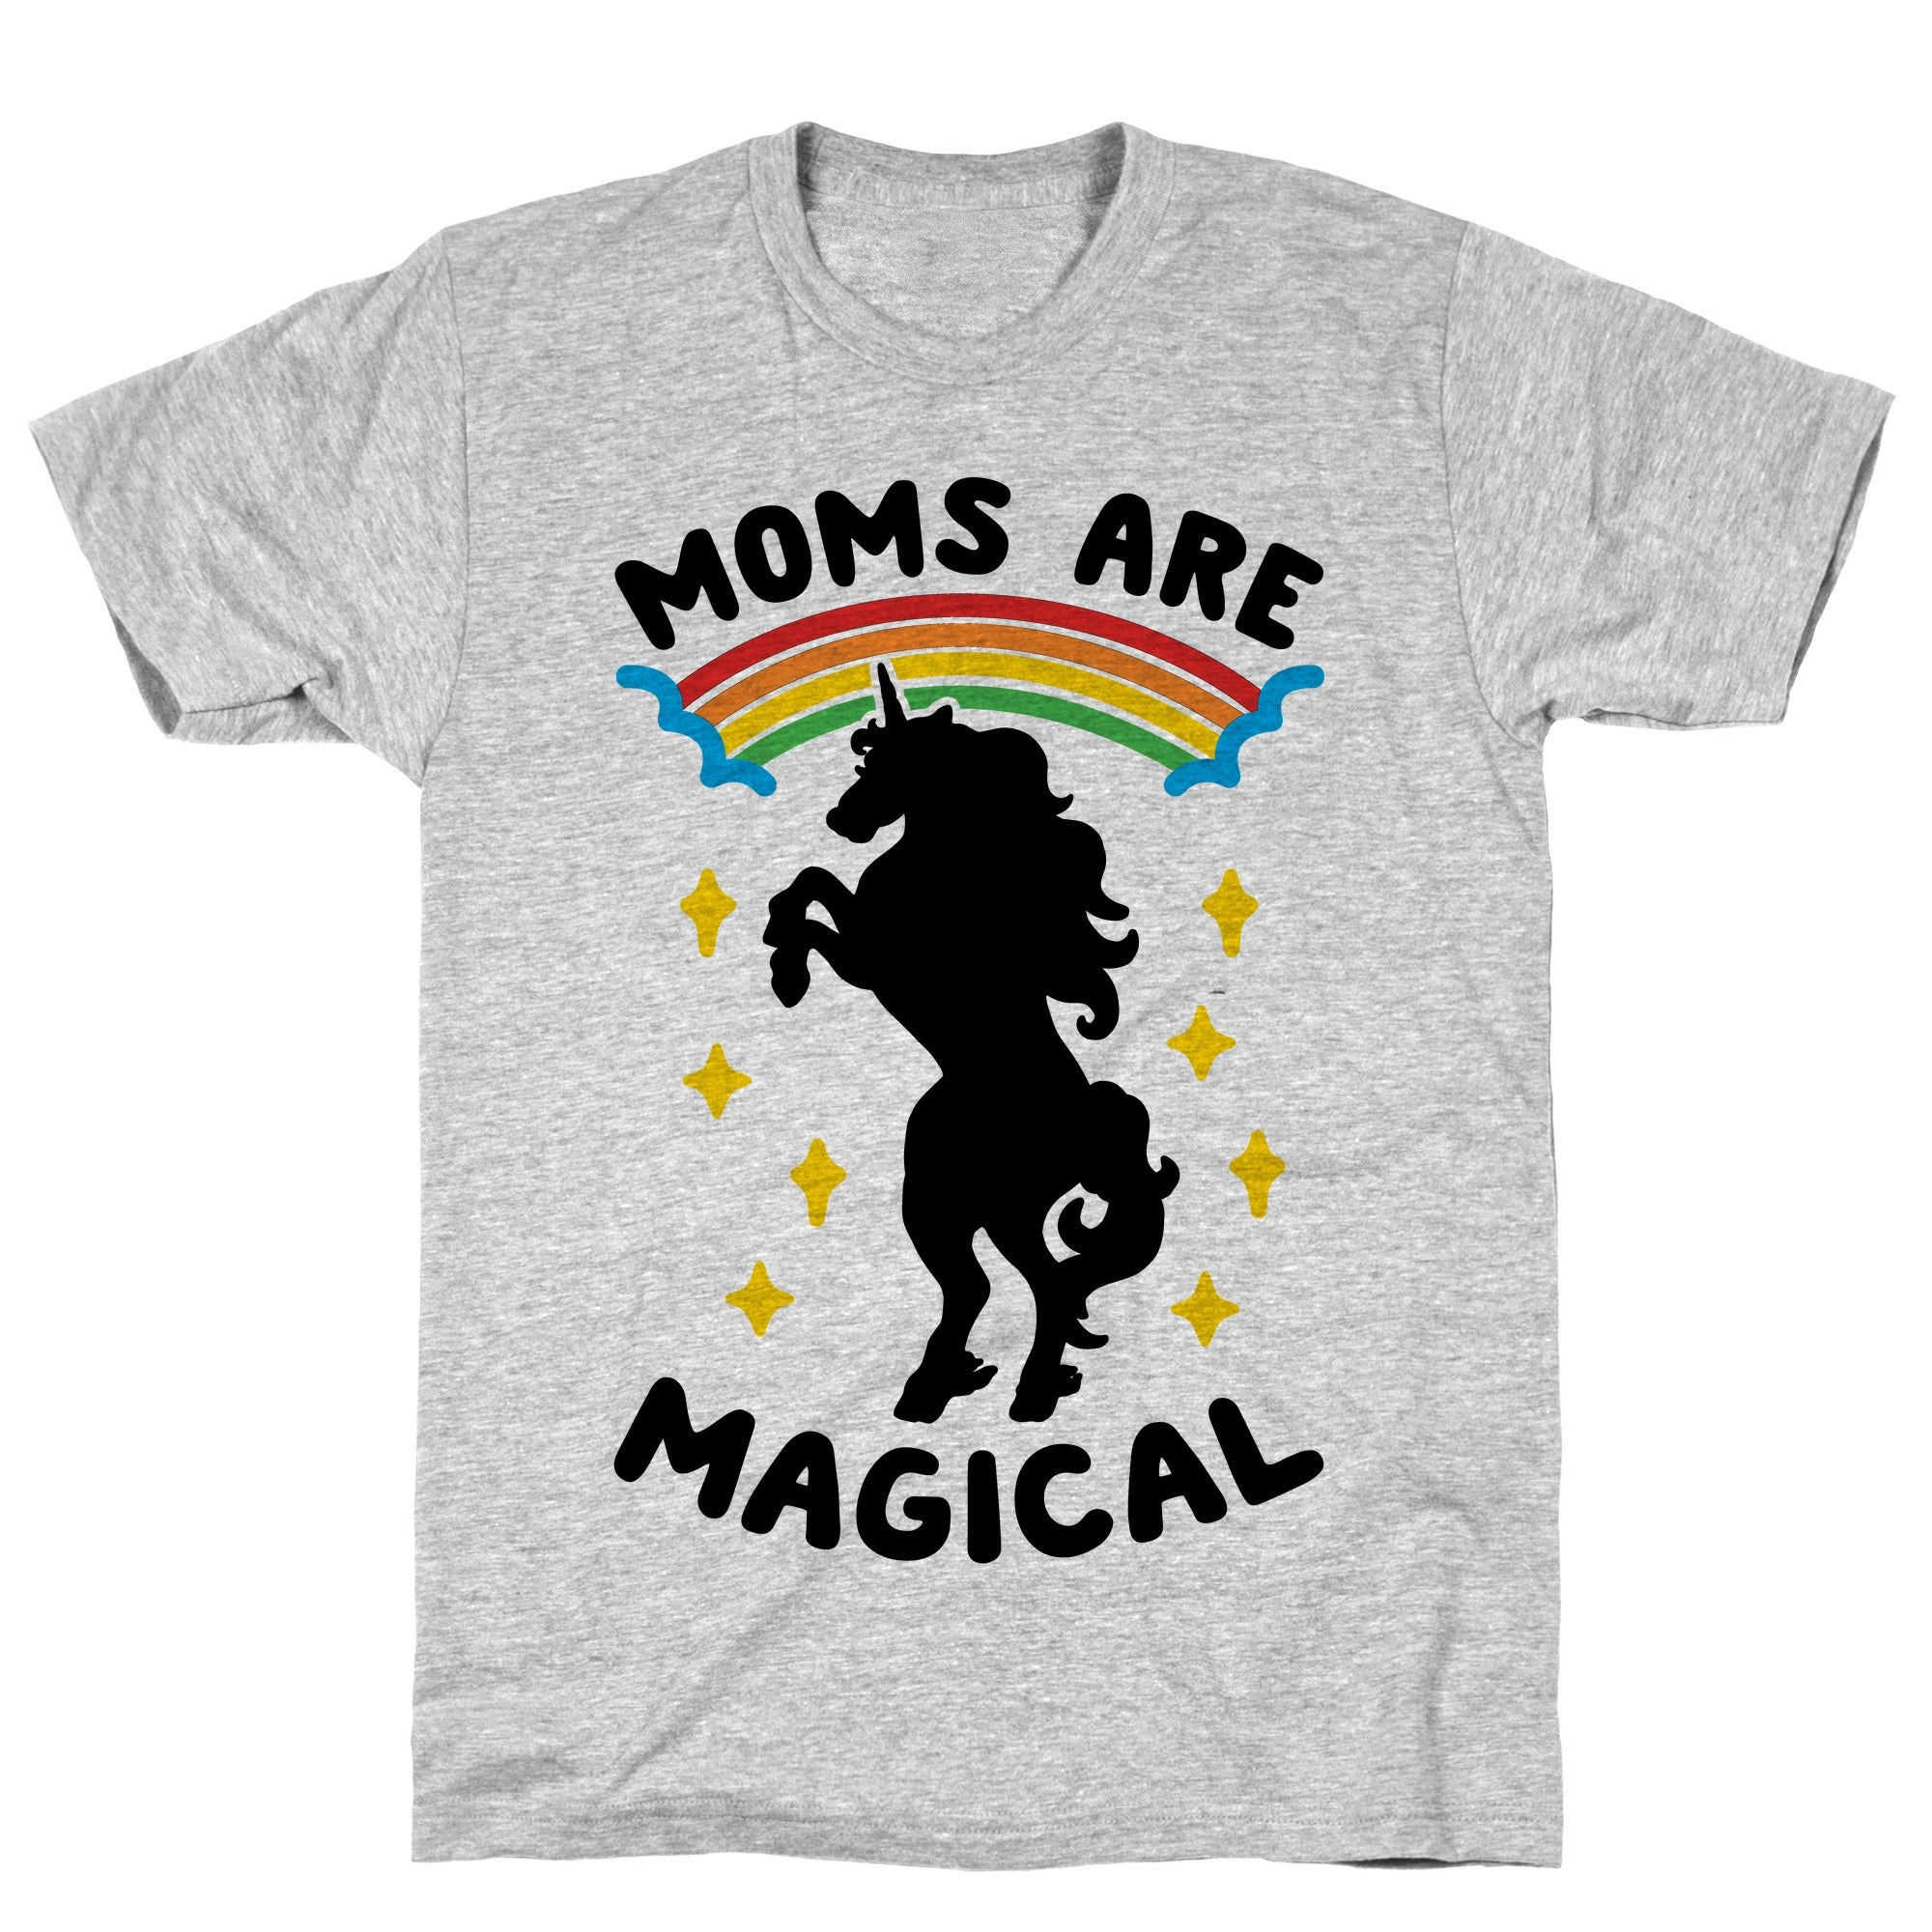 Moms Are Magical Athletic Gray Unisex Cotton Tee by LookHUMAN